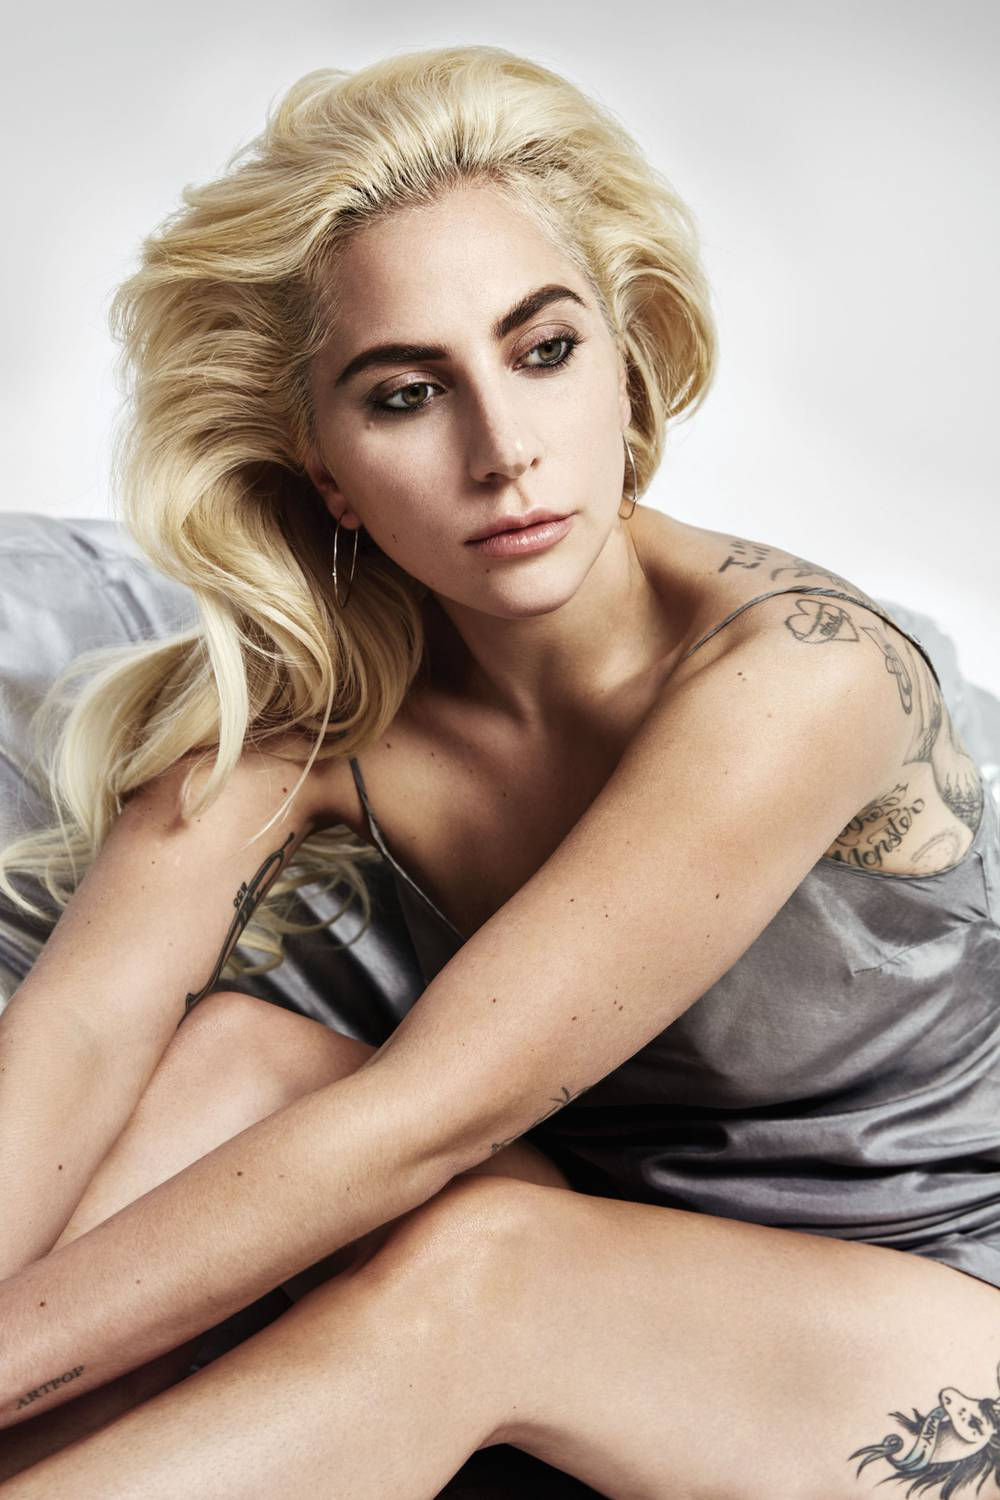 Lady Gaga closes the curtain on 2016 with sophistication ... Lady Gaga